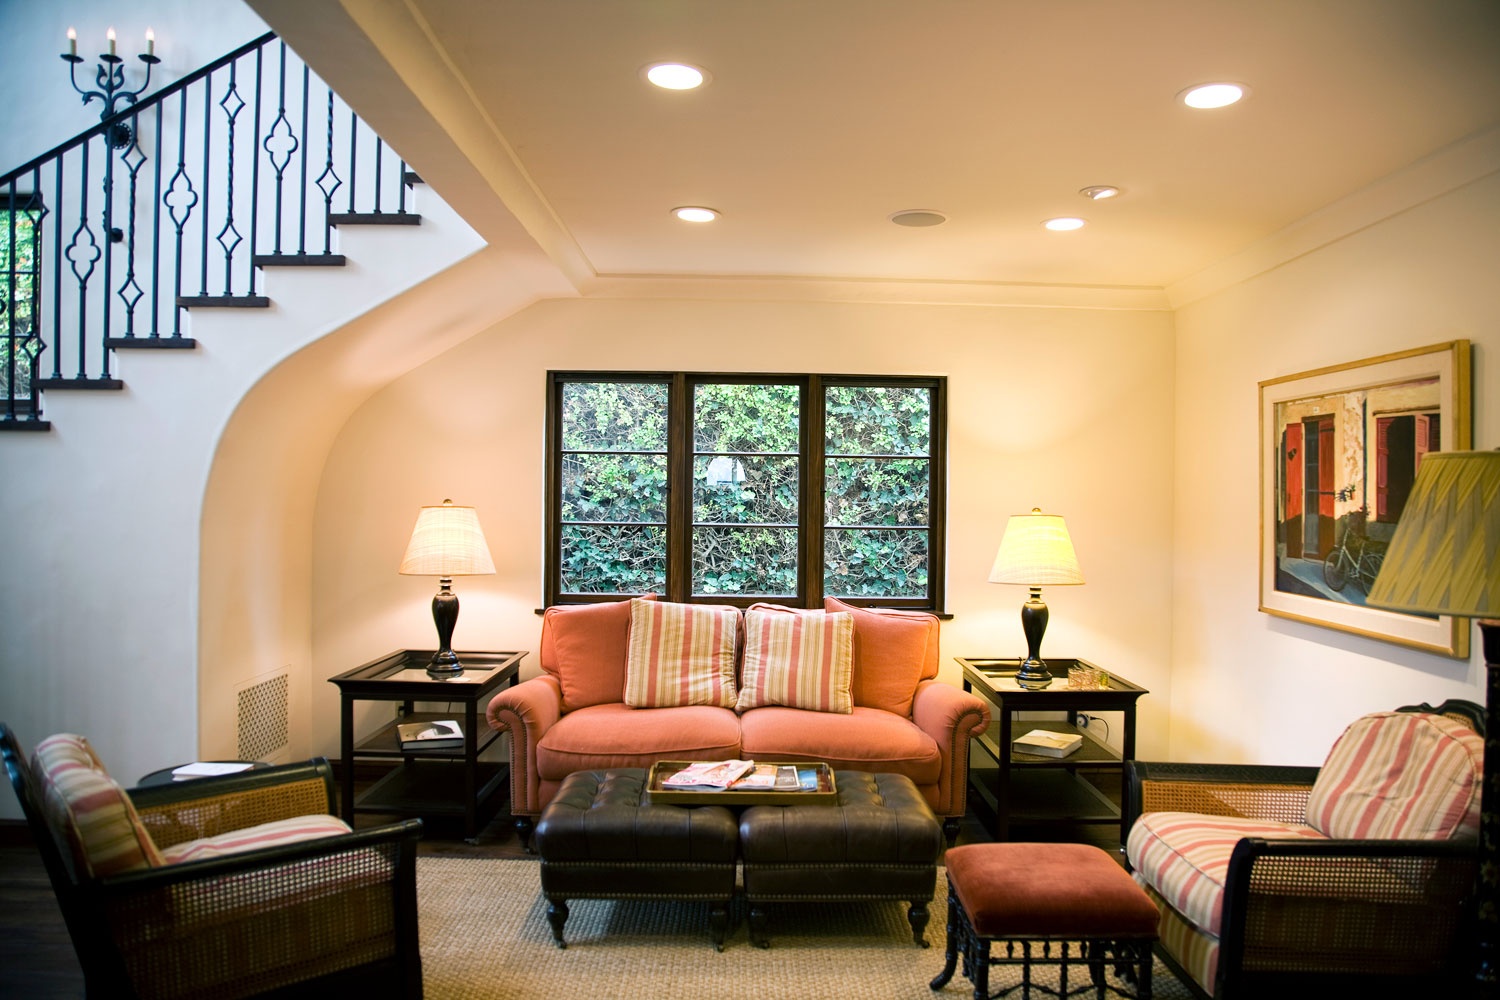 03-Living-Room-Spanish-Style-Gary-Drake-General-Contractor.jpg